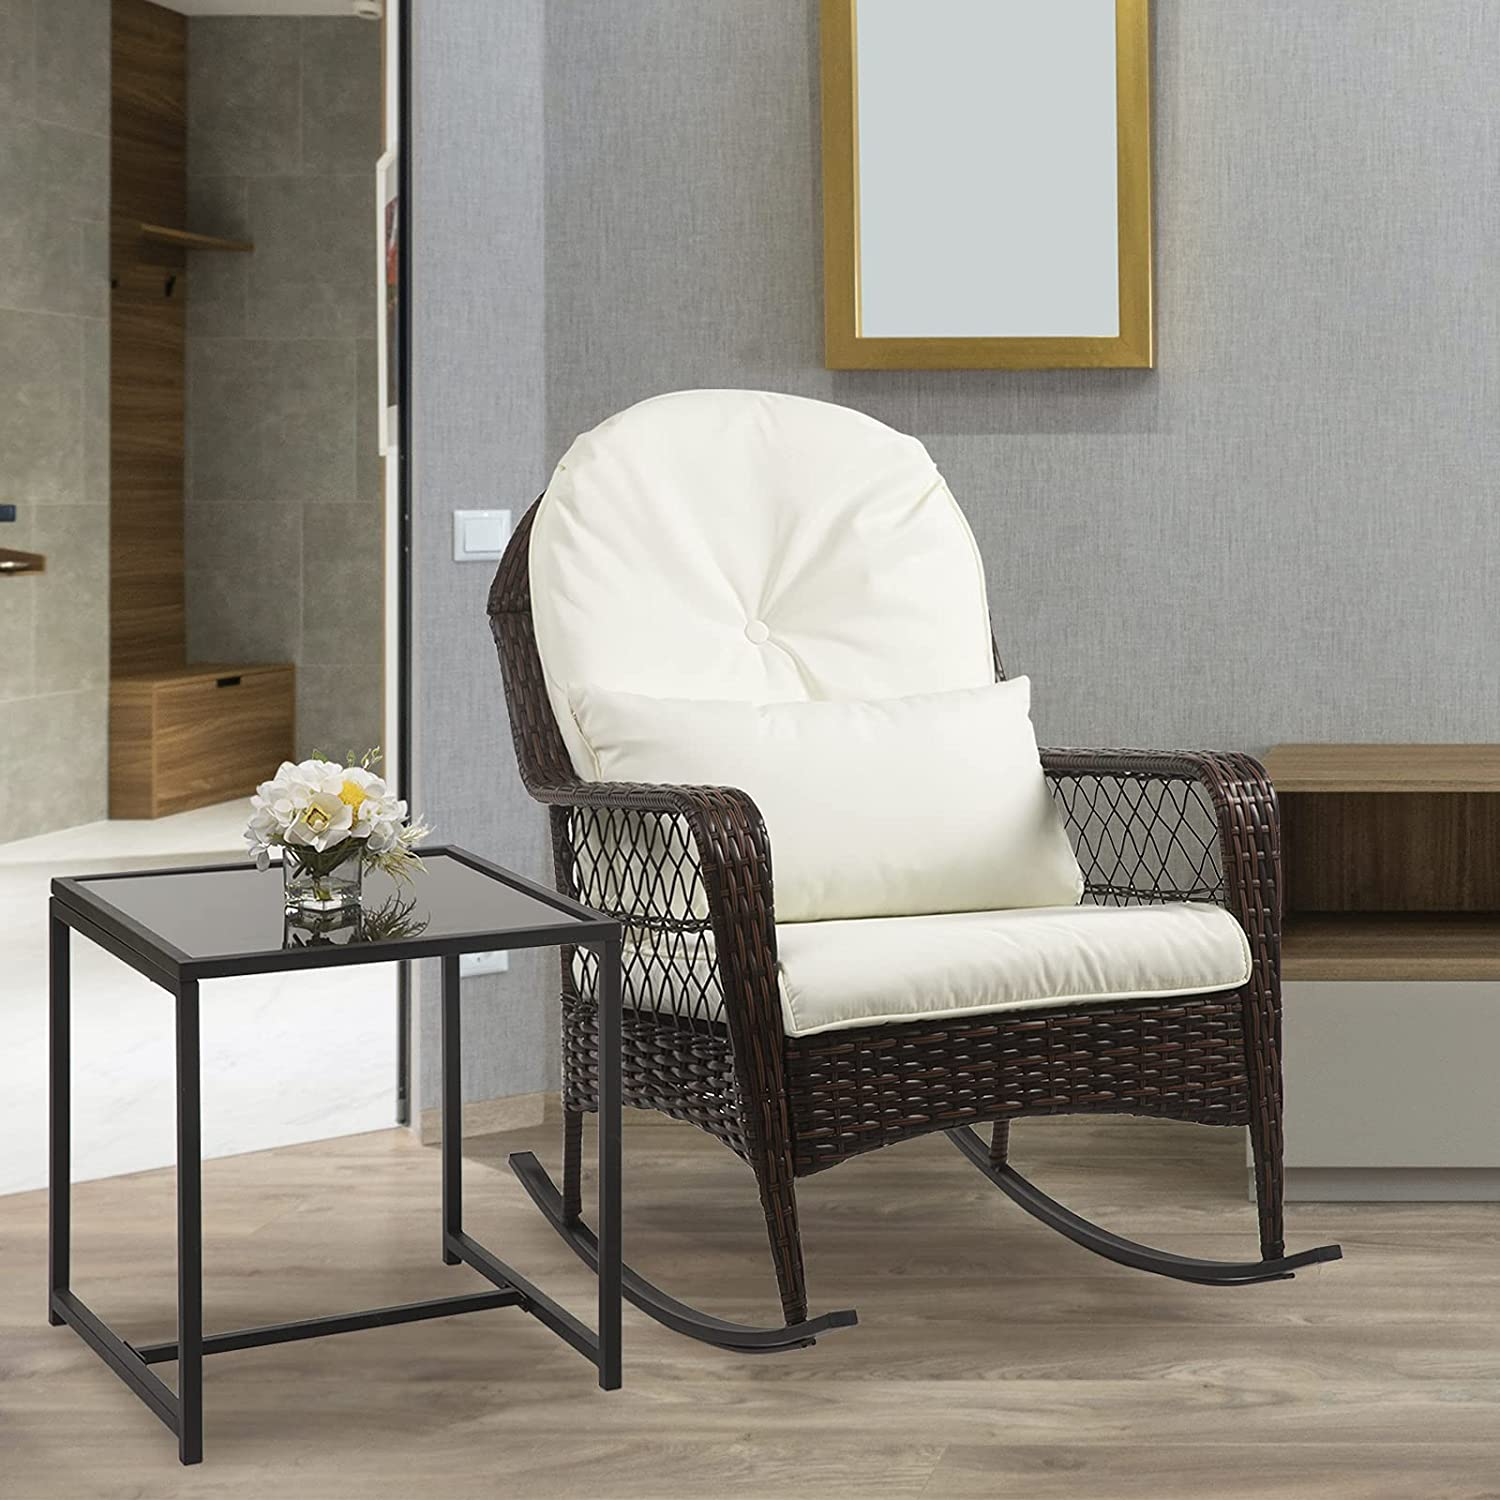 Charavector Wicker 定価の67%OFF Rocking Chair and Table Roc 2 Set Oudoor pcs 購入